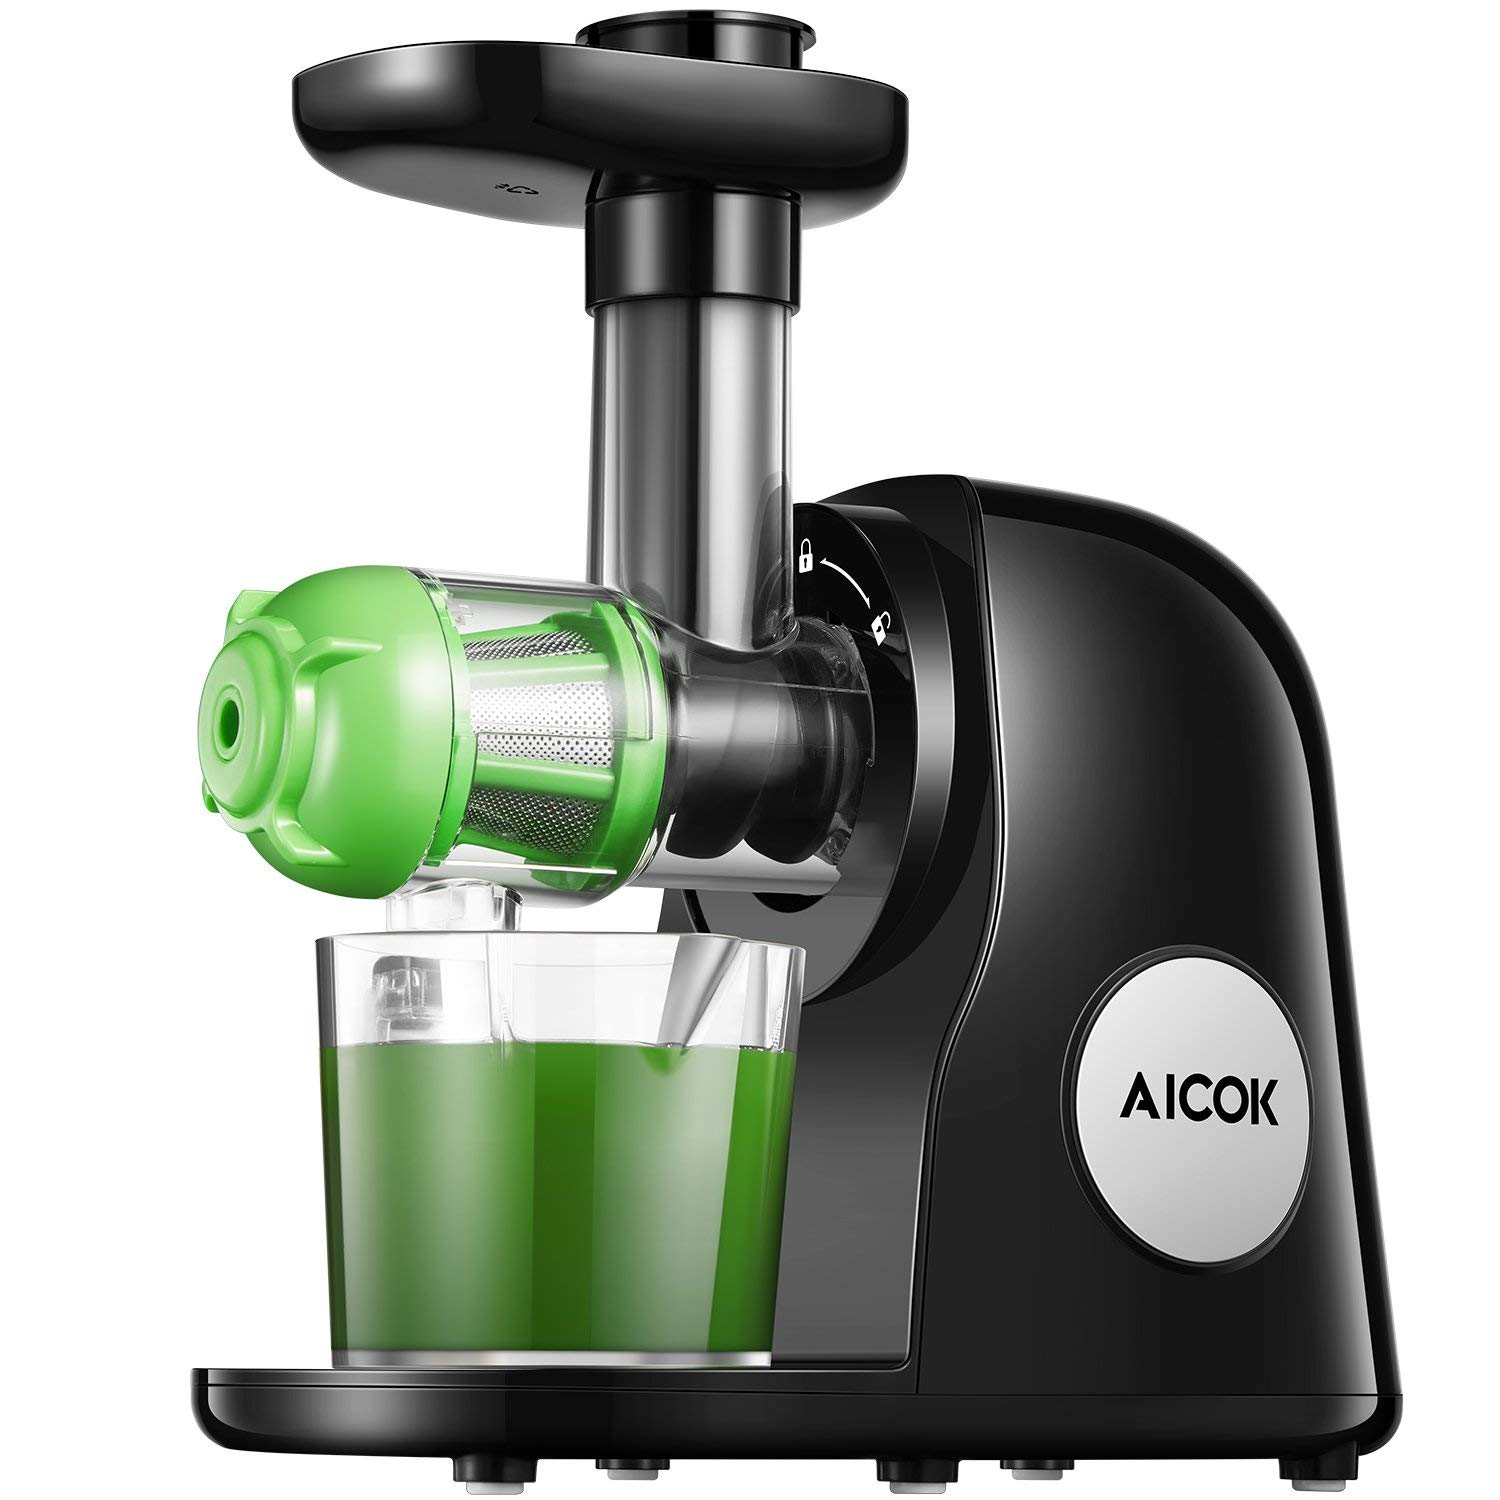 AICOKSlow Masticating Juicer - - Masticating juicers are the superior juicers because they get substantially more nutrition out of your fruits and veggies. Because they create almost no heat or friction, there are more vitamins, enzymes, minerals, trace minerals and nutrients reserved in the juice. There is also less foaming and no clogging.- This unit is quiet, BPA-free, and super easy to clean with dishwasher-safe parts.